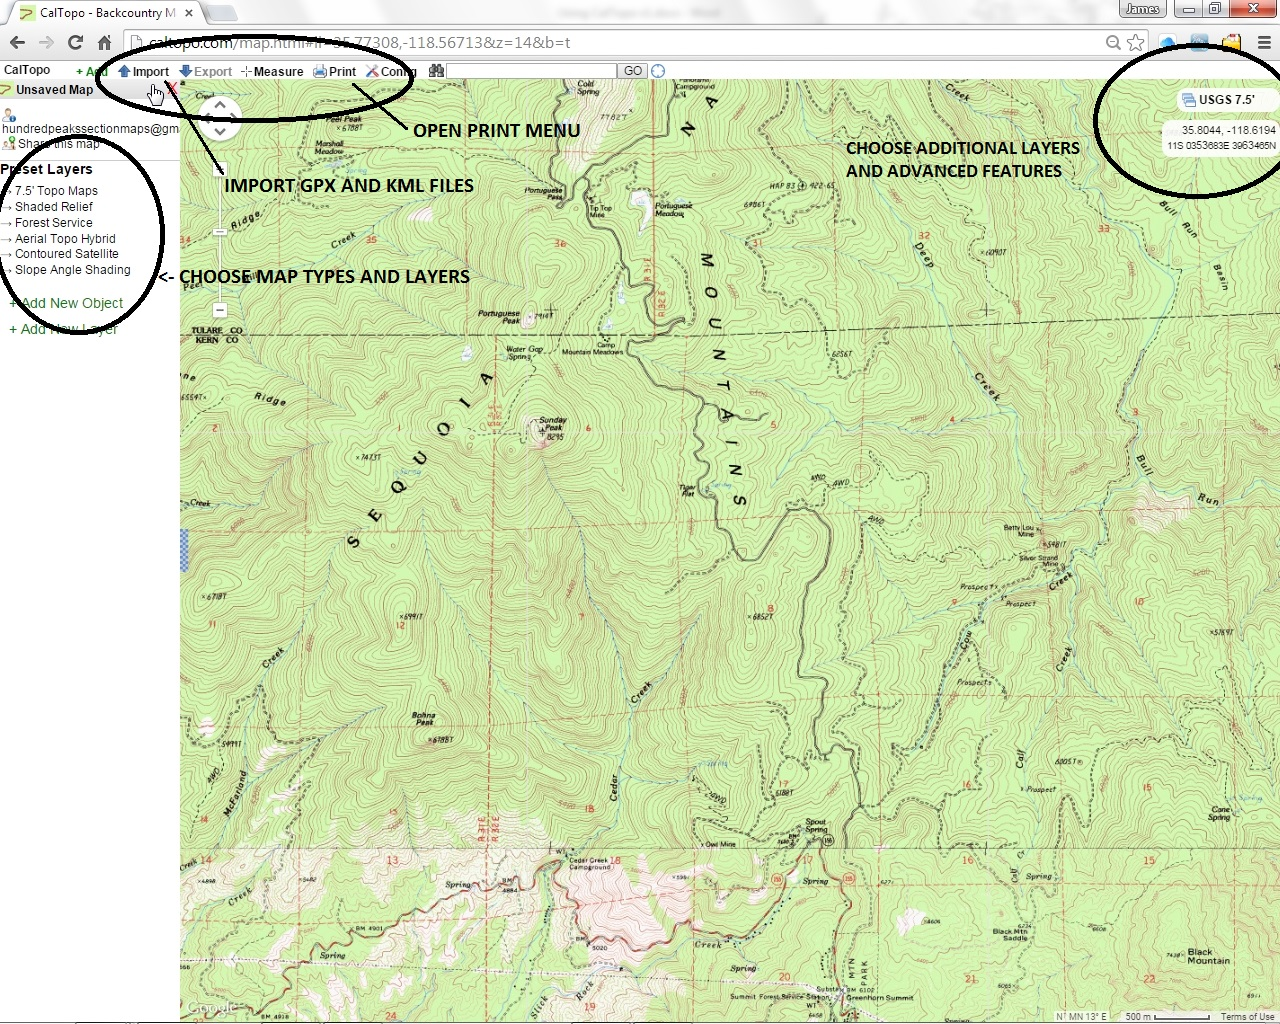 USING CALTOPO WITH HPS MAPS on